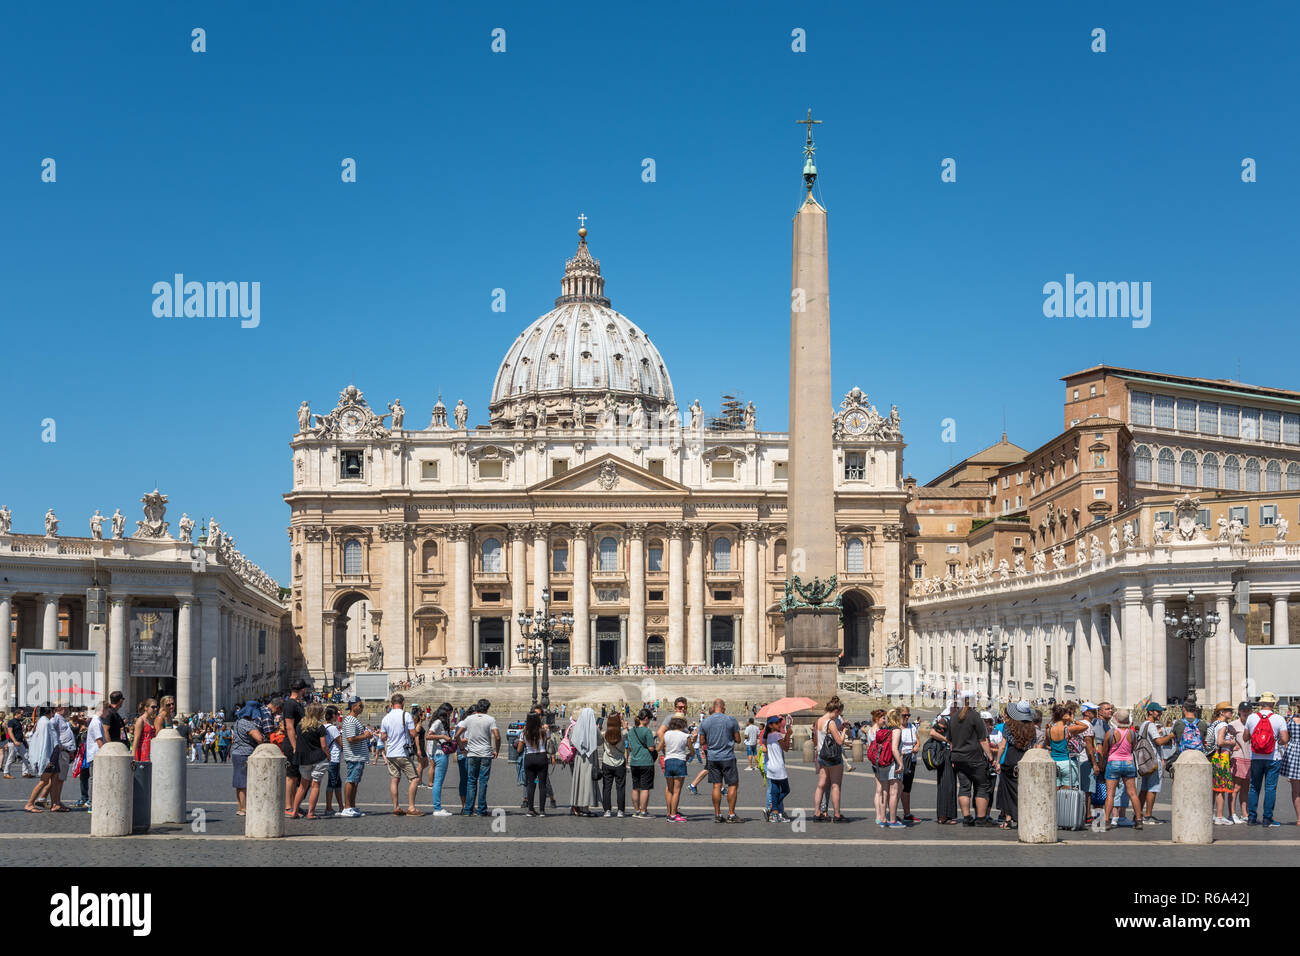 St. Peter's Basilica & long queue of tourists, Vatican City, Rome, Italy - Stock Image